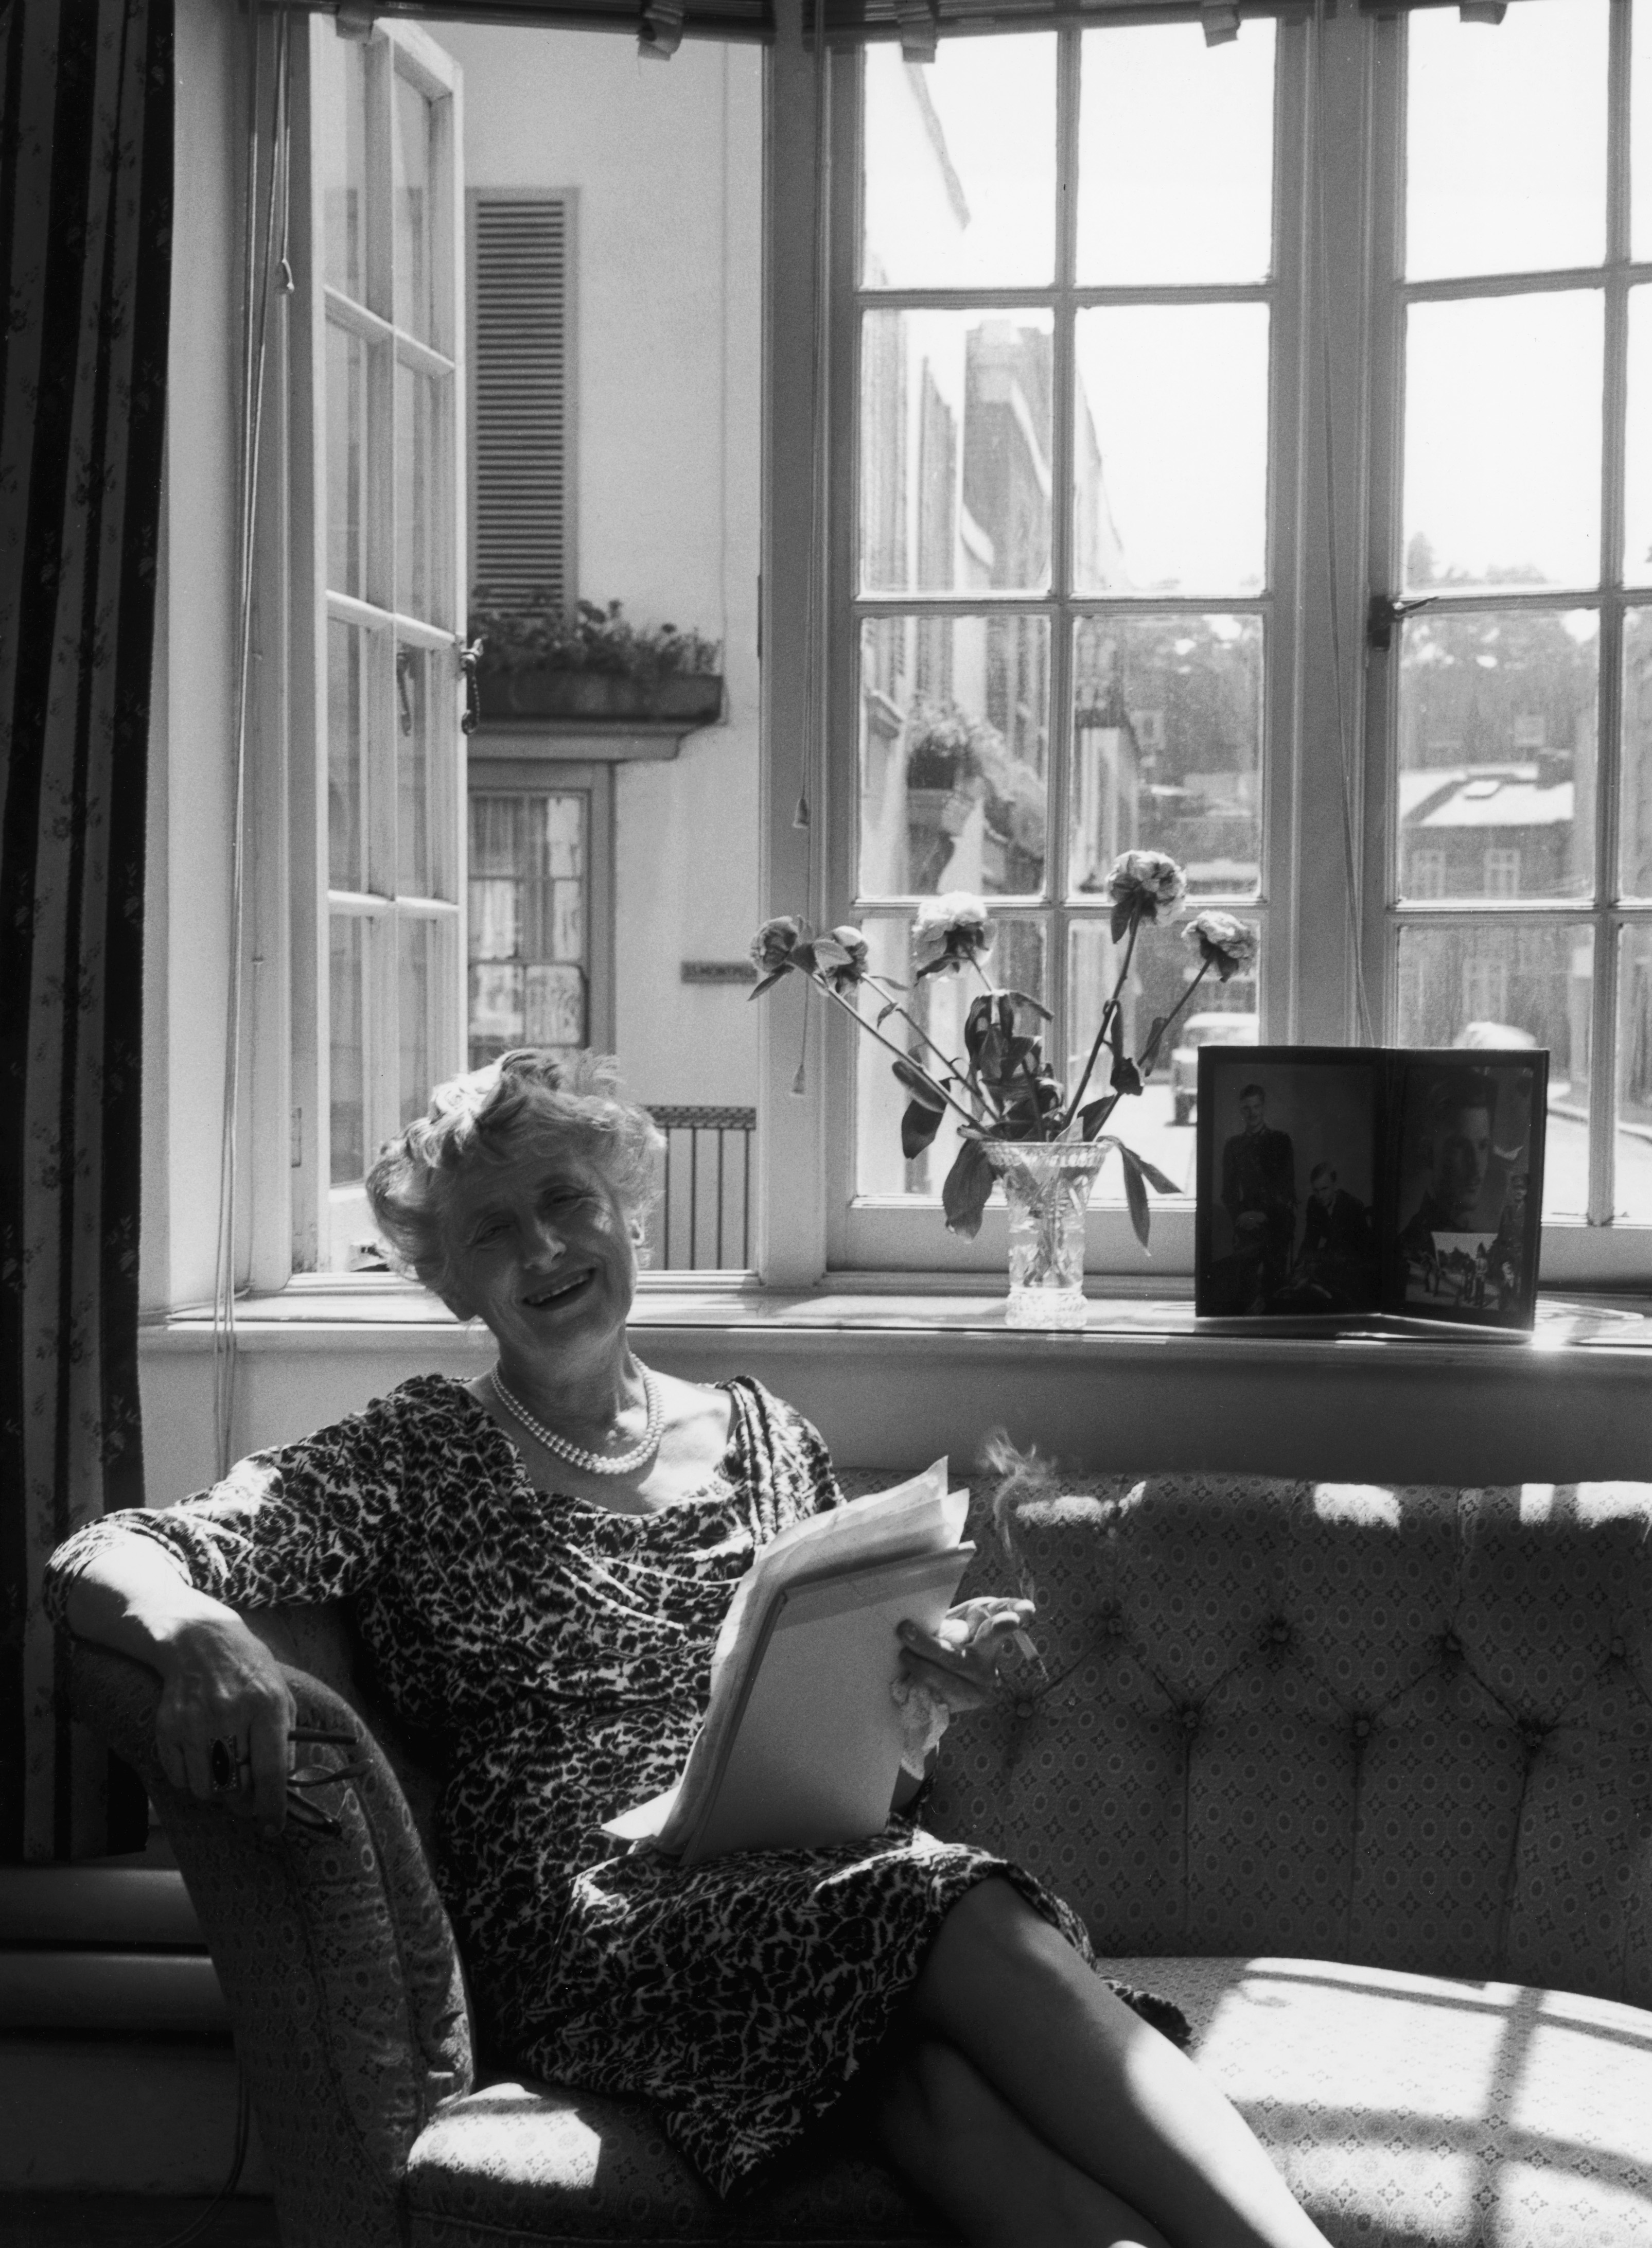 New Zealand-born crime writer and theatre director Ngaio Marsh (1895 - 1982) rereads the notes for her latest book in the sitting room of her Kensington home, 1966. (Getty)